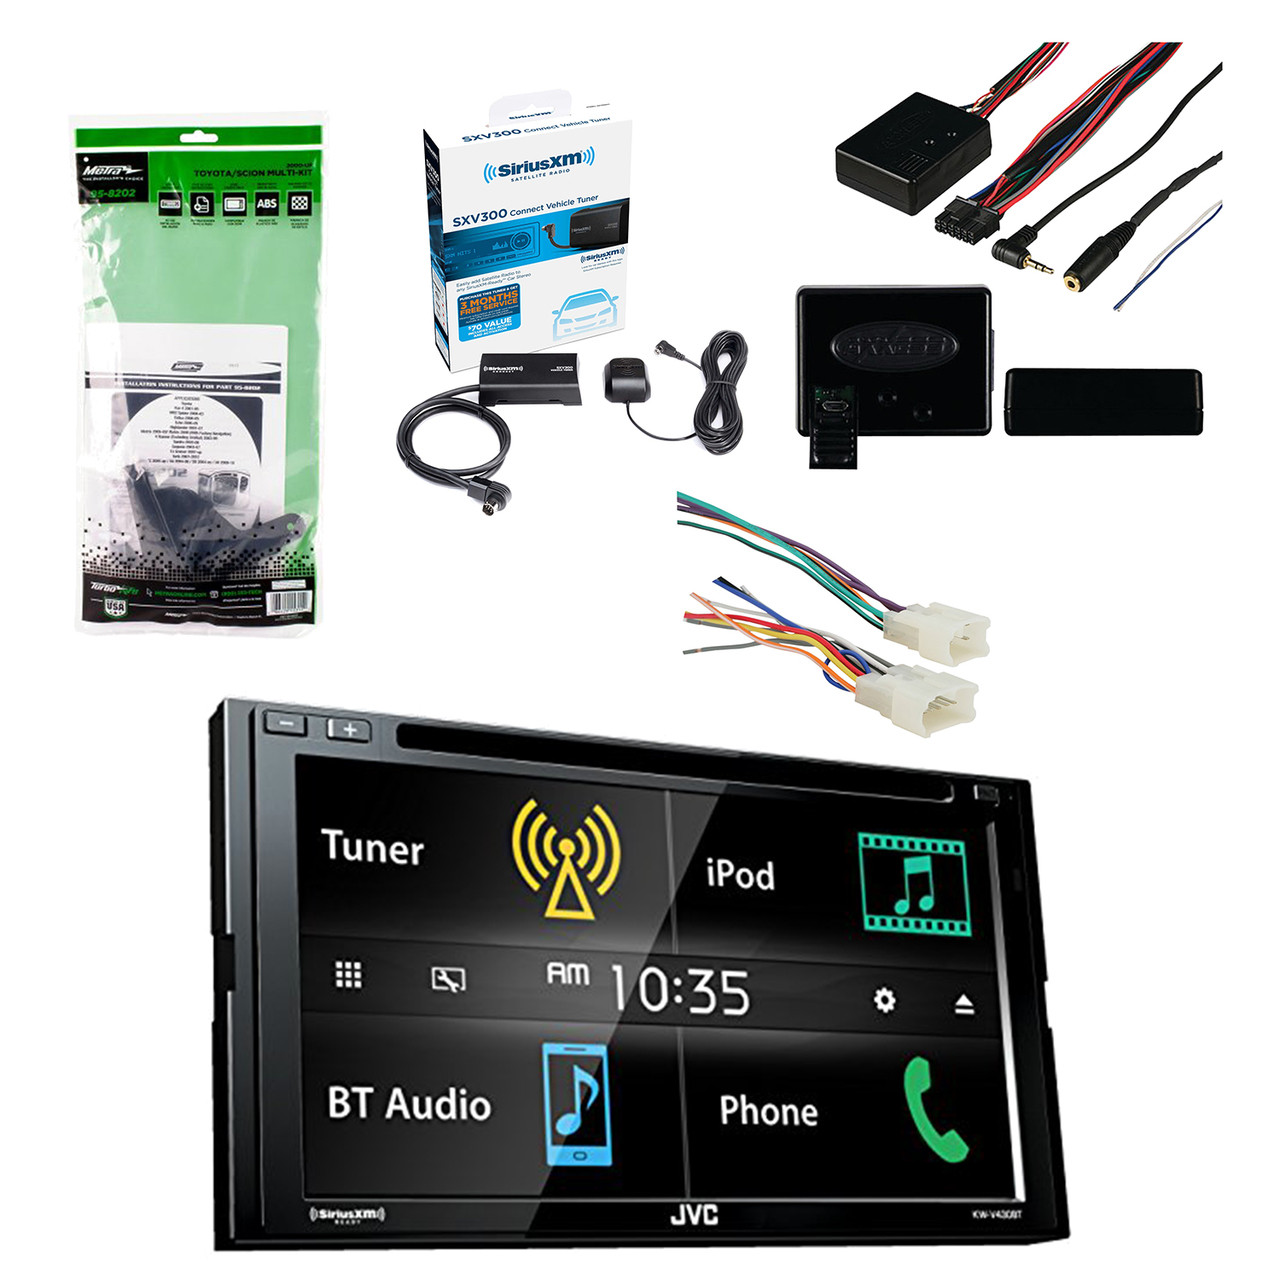 hight resolution of jvc 6 8 inch lcd touchscreen 2 din bluetooth car stereo receiver w siriusxm satellite radio vehicle tuner kit metra multi dash kit radio wiring harness